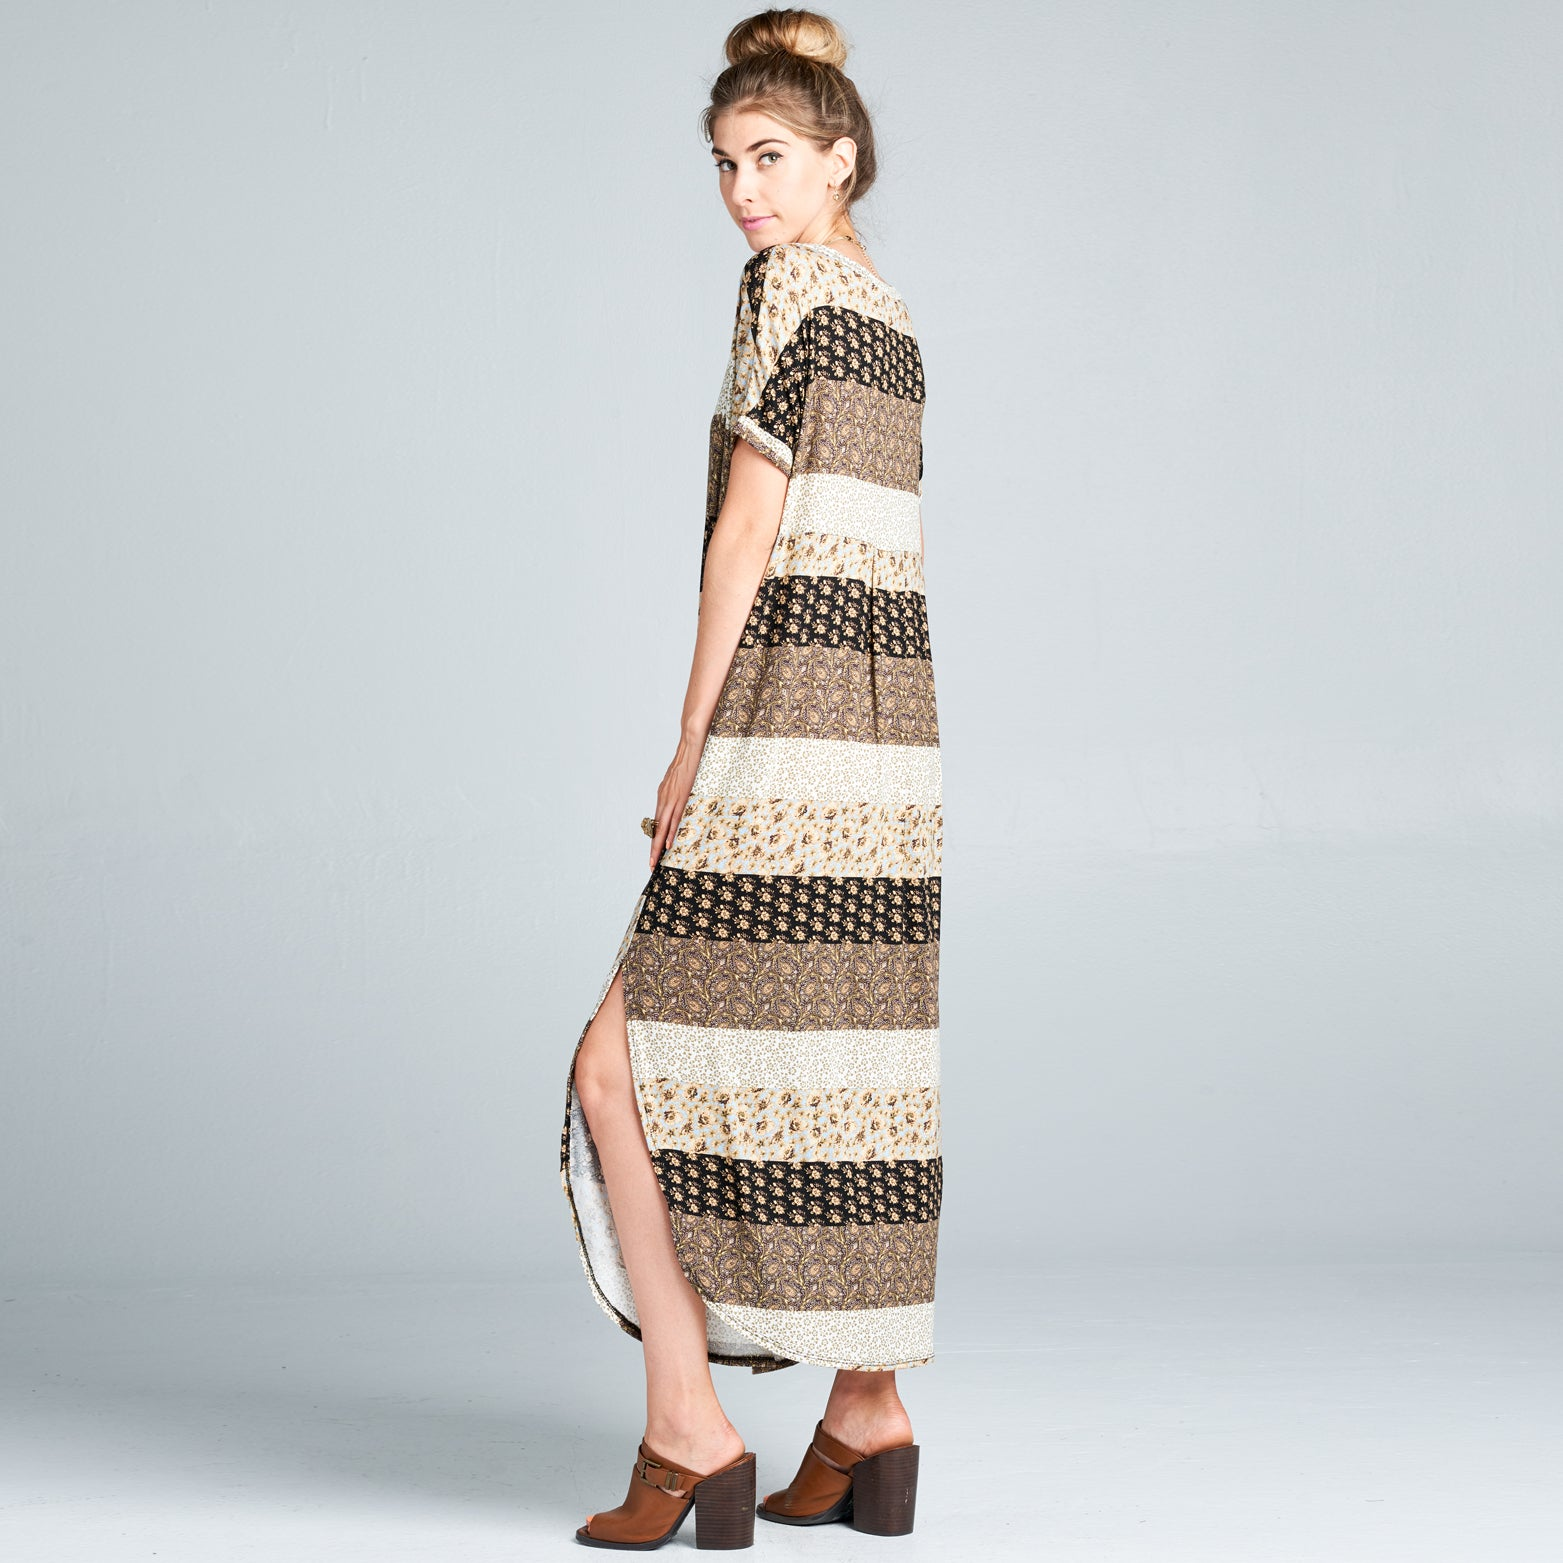 RL Brown Block Maxi Dress - Love, Kuza